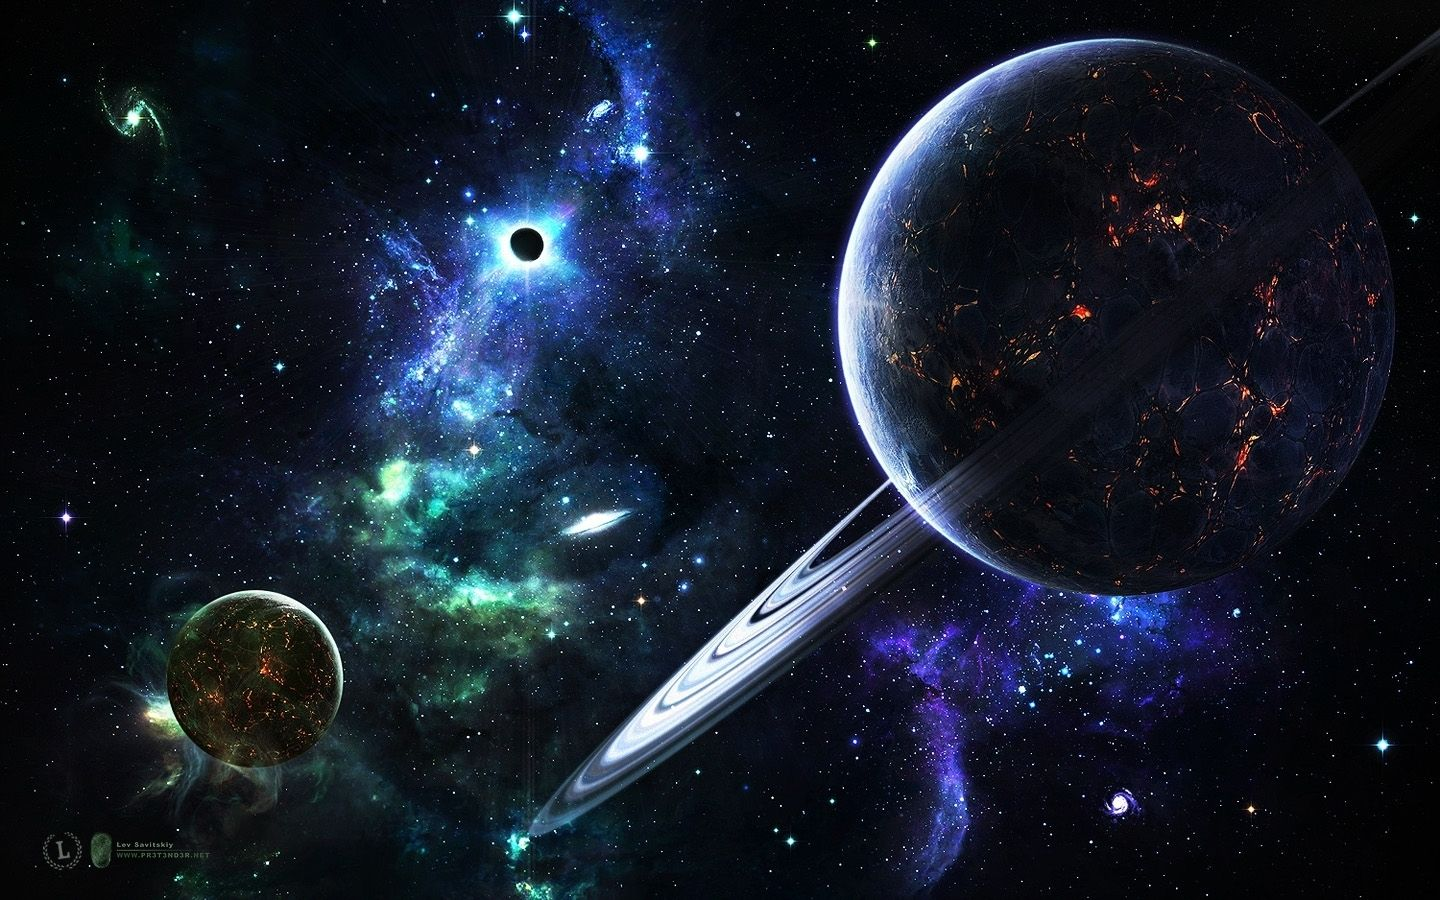 Hd Outer Space Wallpaper: Http://69hdwallpapers.com/outer